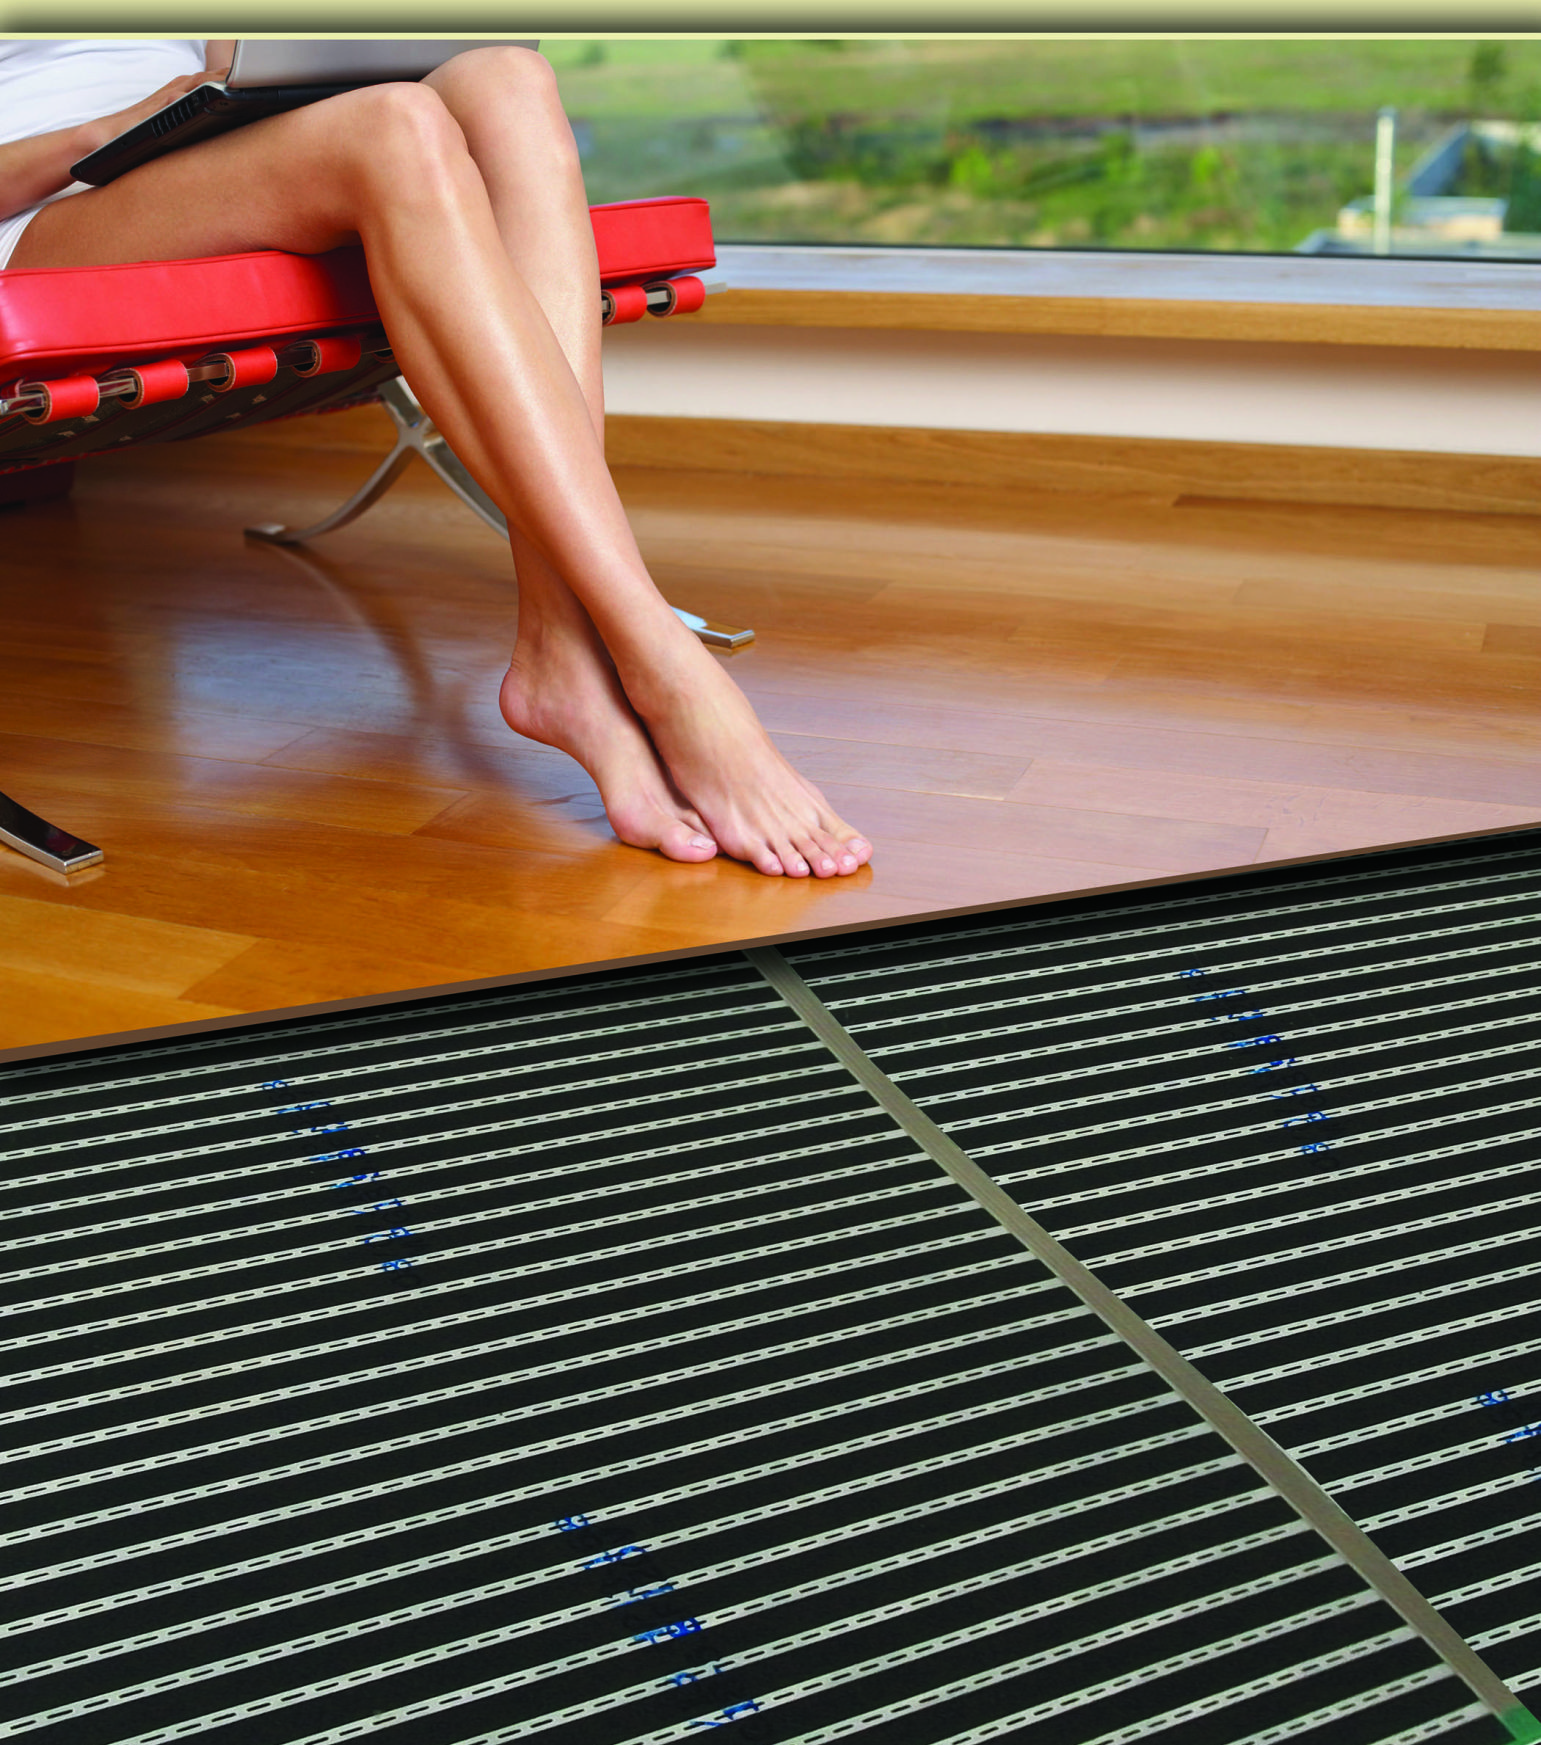 MP Global Products ladies-barefeet-on-floor-FILMunder radiant heat